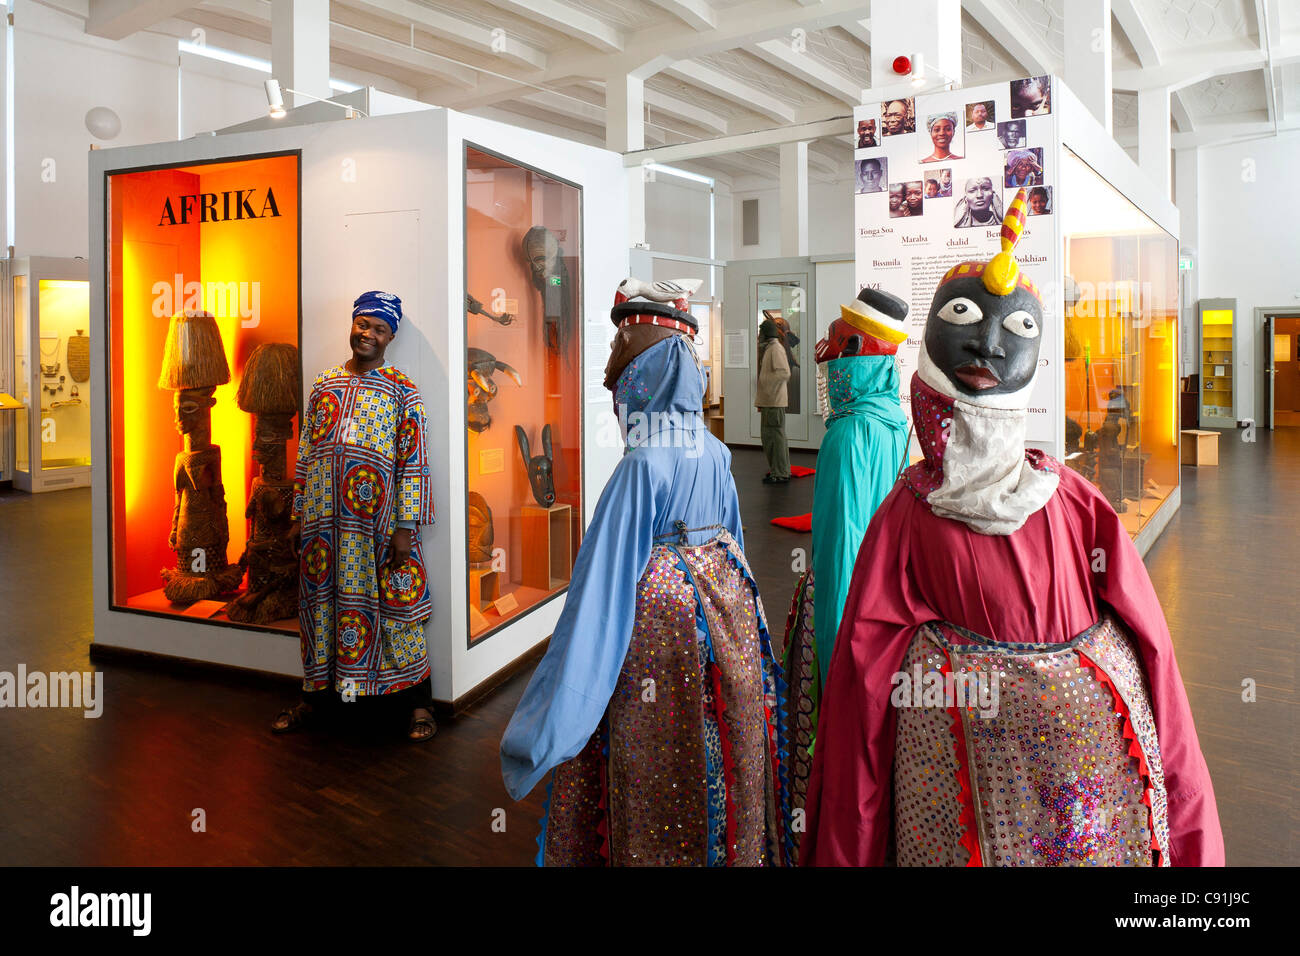 Museum of Ethnology Hamburg, Africa exhibtion, Hanseatic city of Hamburg, Germany, Europe - Stock Image